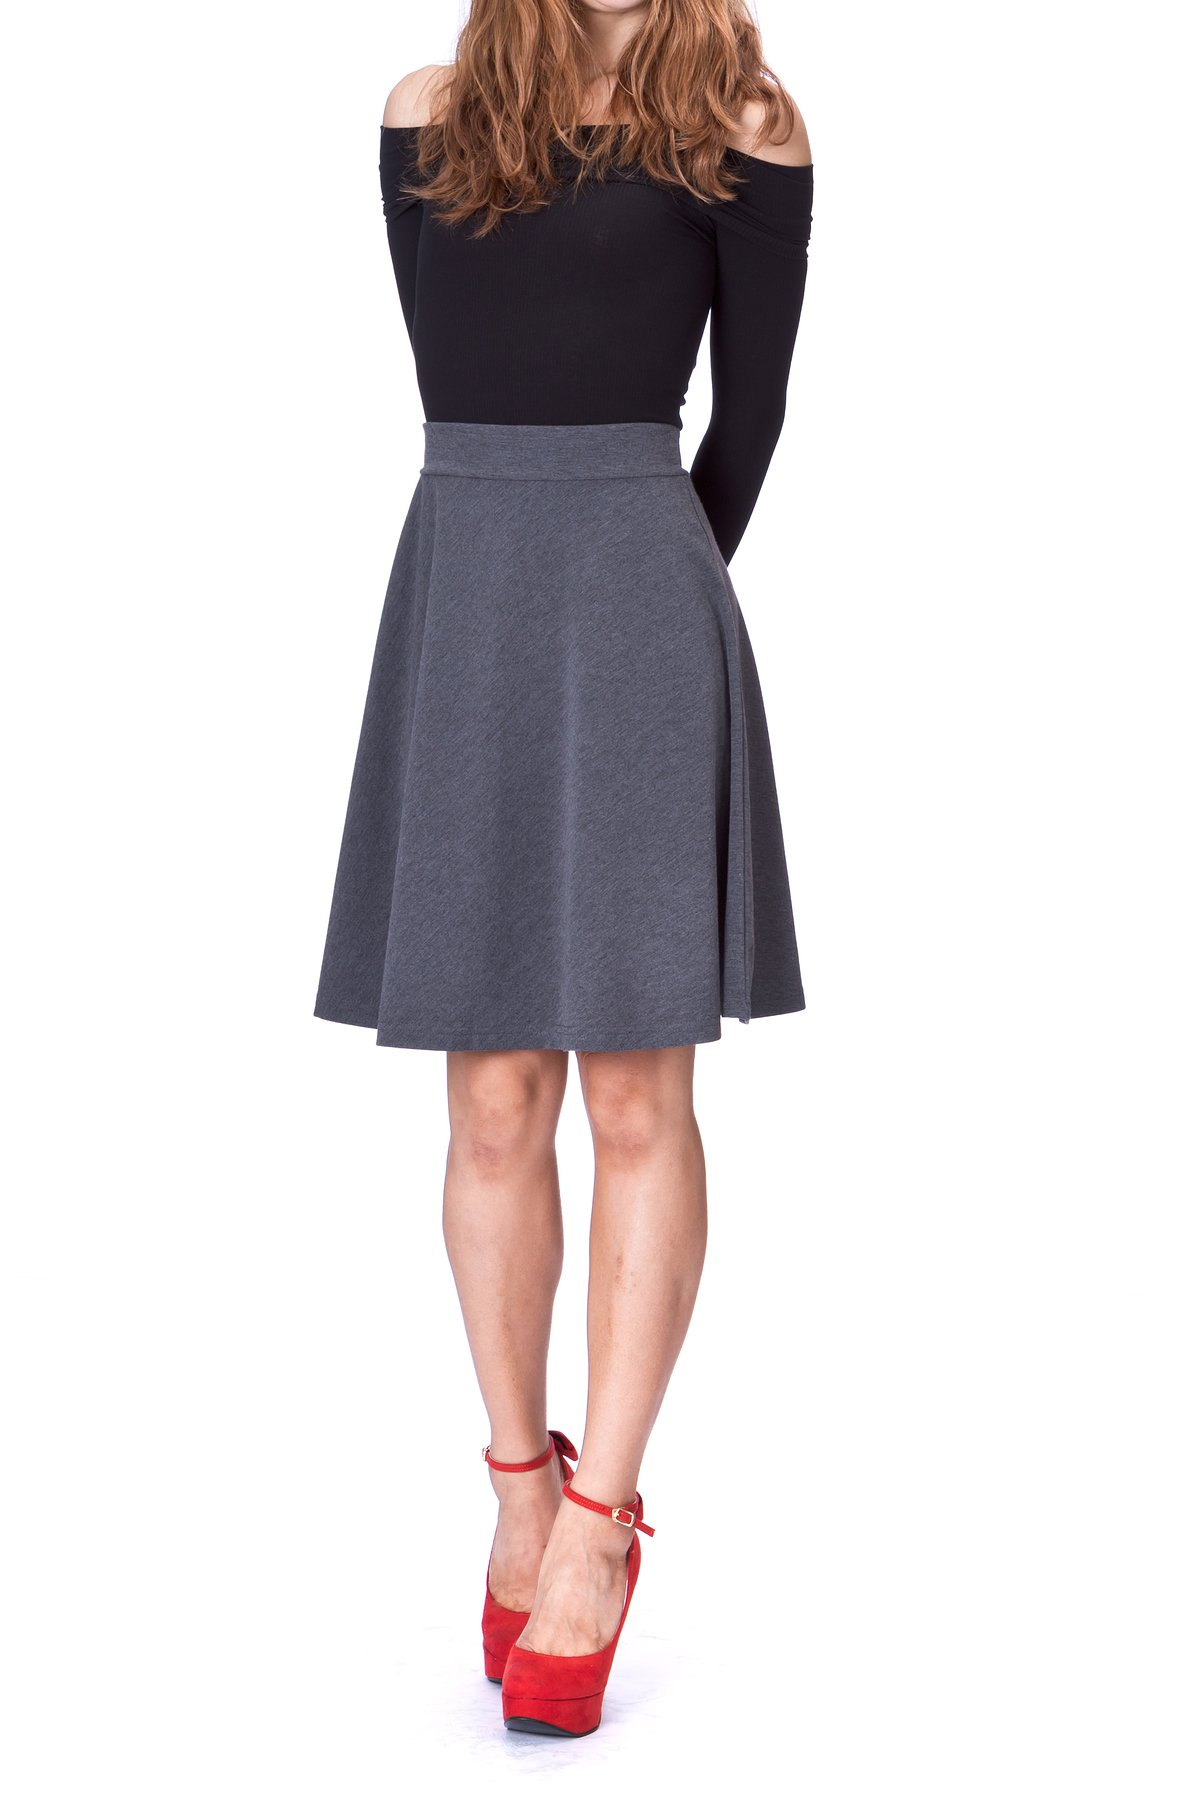 Simple Stretch A line Flared Knee Length Skirt Charcoal 2